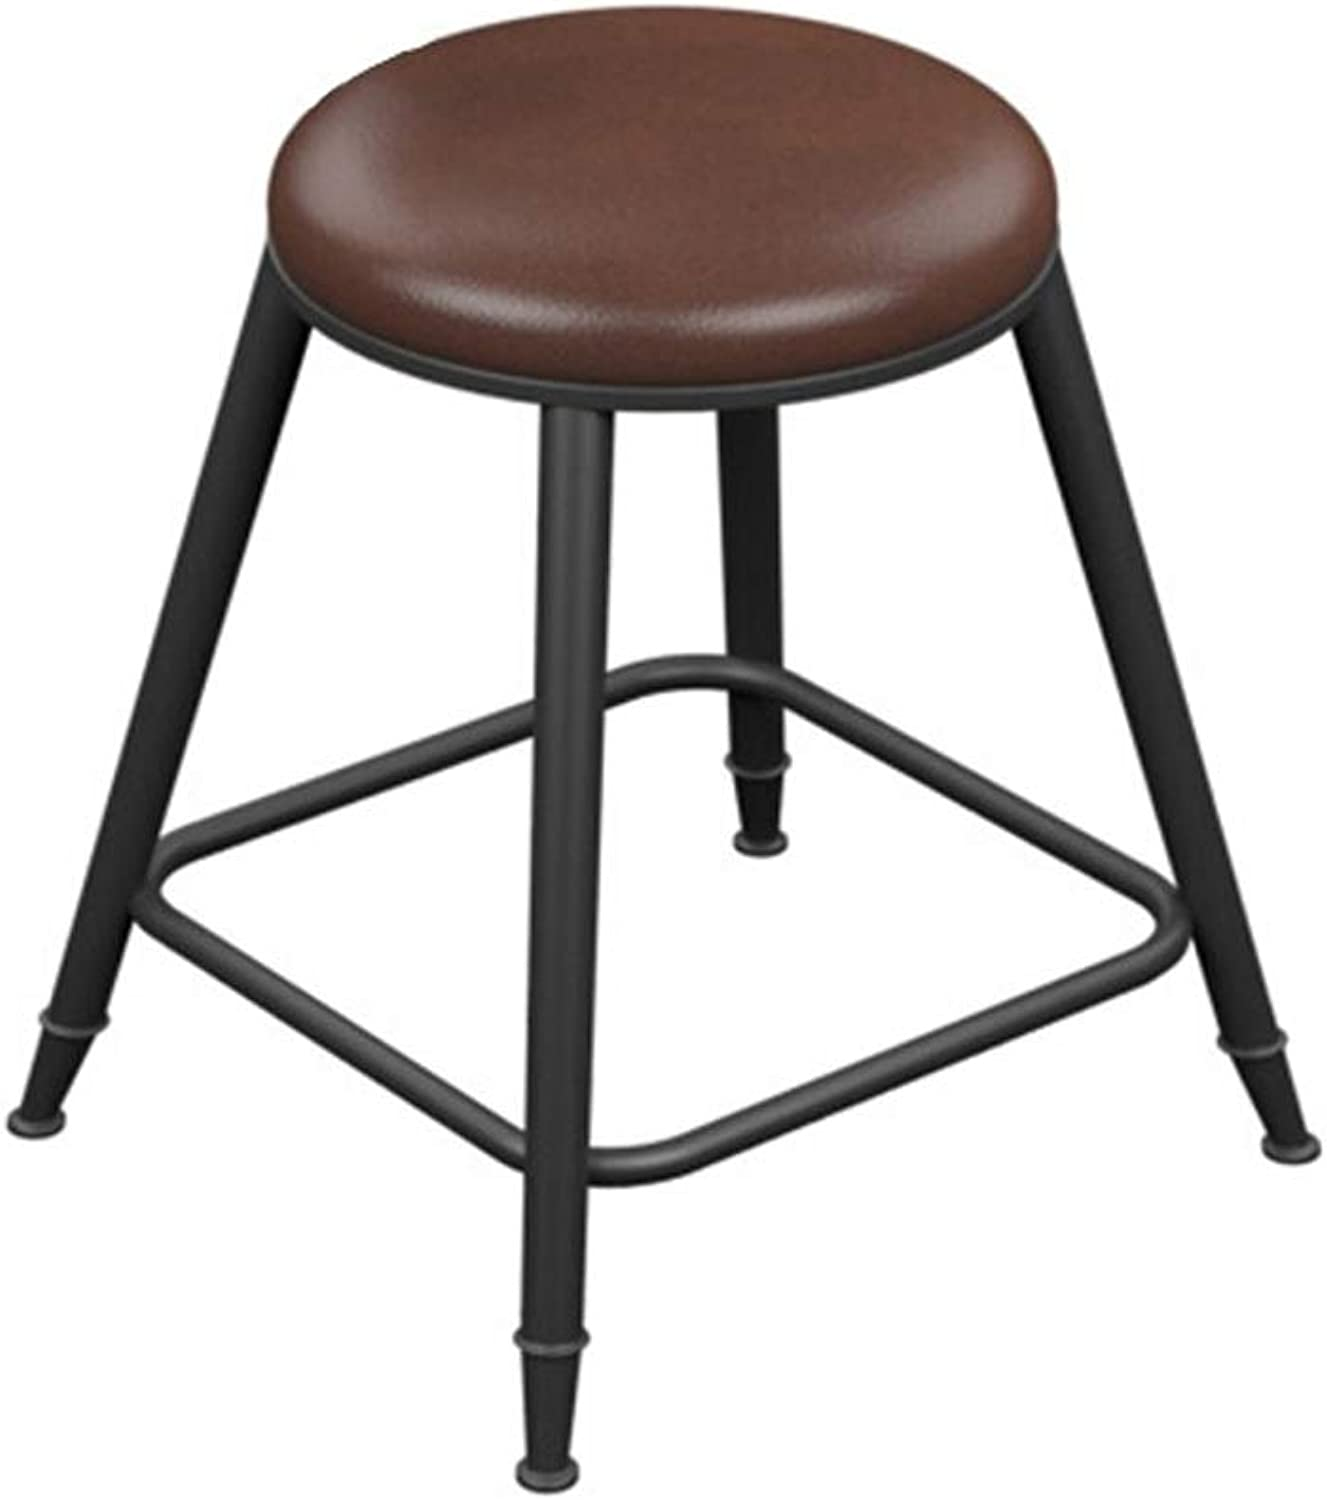 Bar Stool Bar Stool Modern Minimalist European High Chair Solid Wood Wrought Iron Table and Chairs Bar Stool Two Types (color   Leather, Size   60)